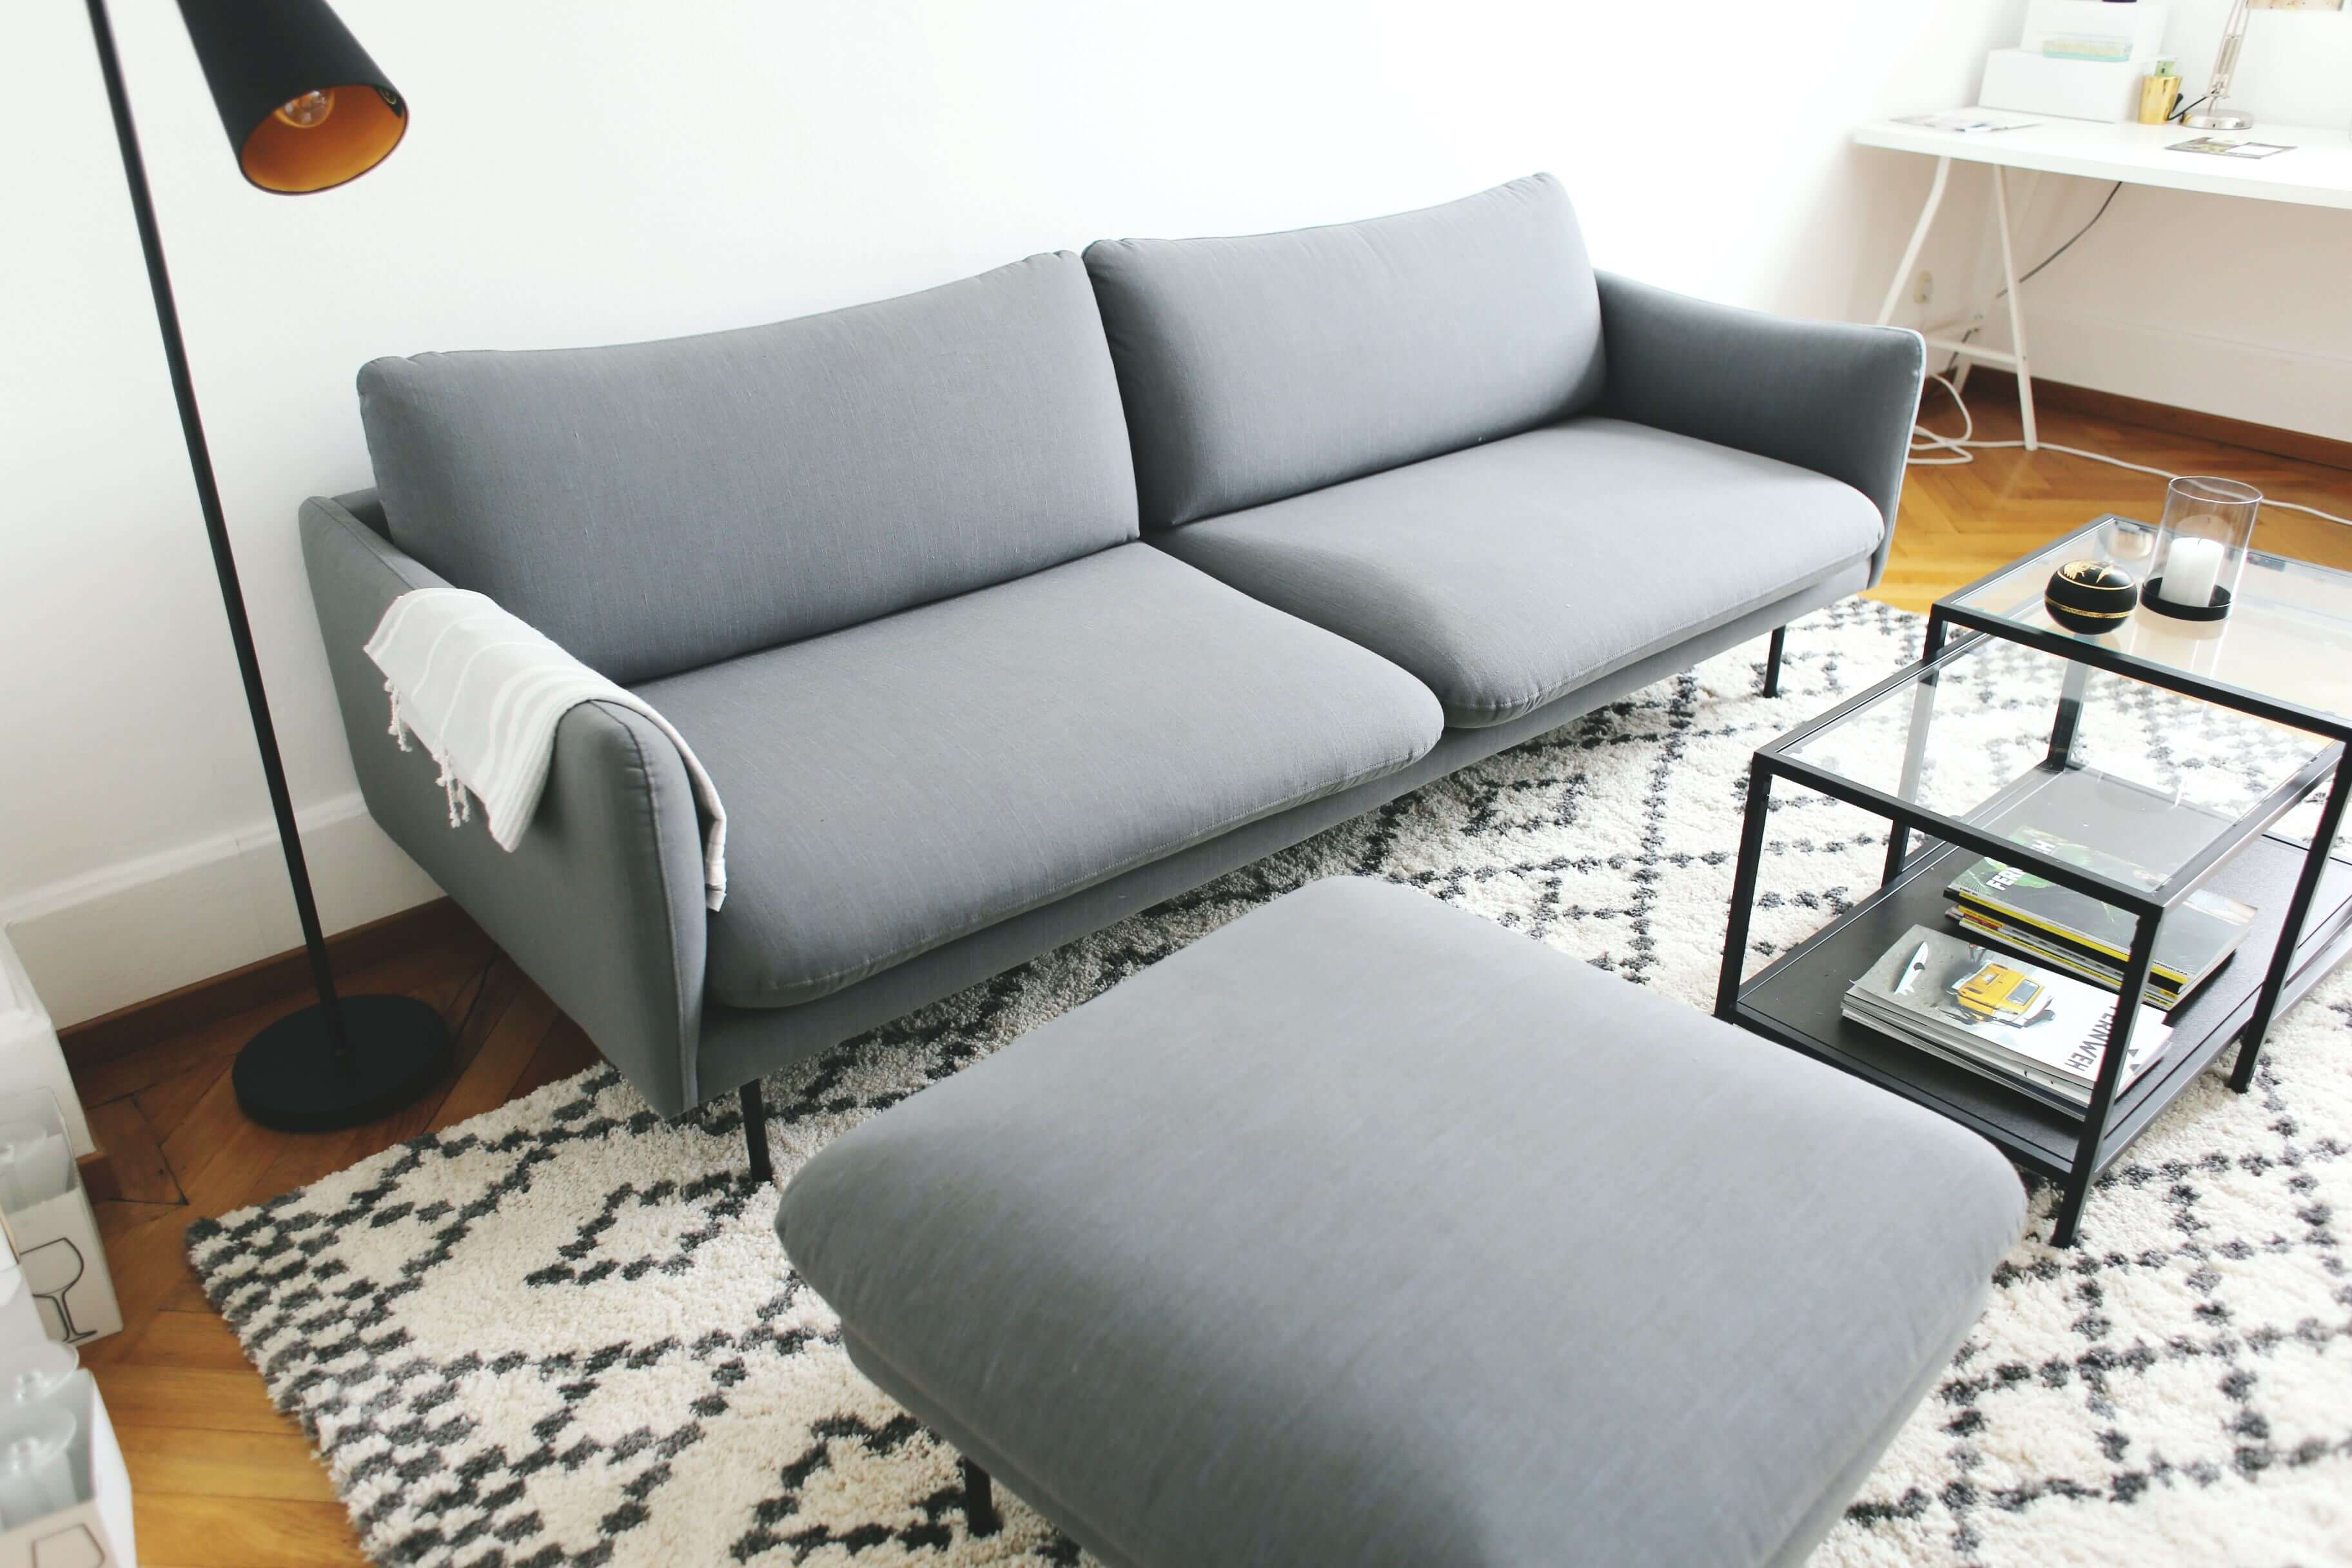 couch sofa wohnzimmer interior doandlive ottoliving otto do live. Black Bedroom Furniture Sets. Home Design Ideas